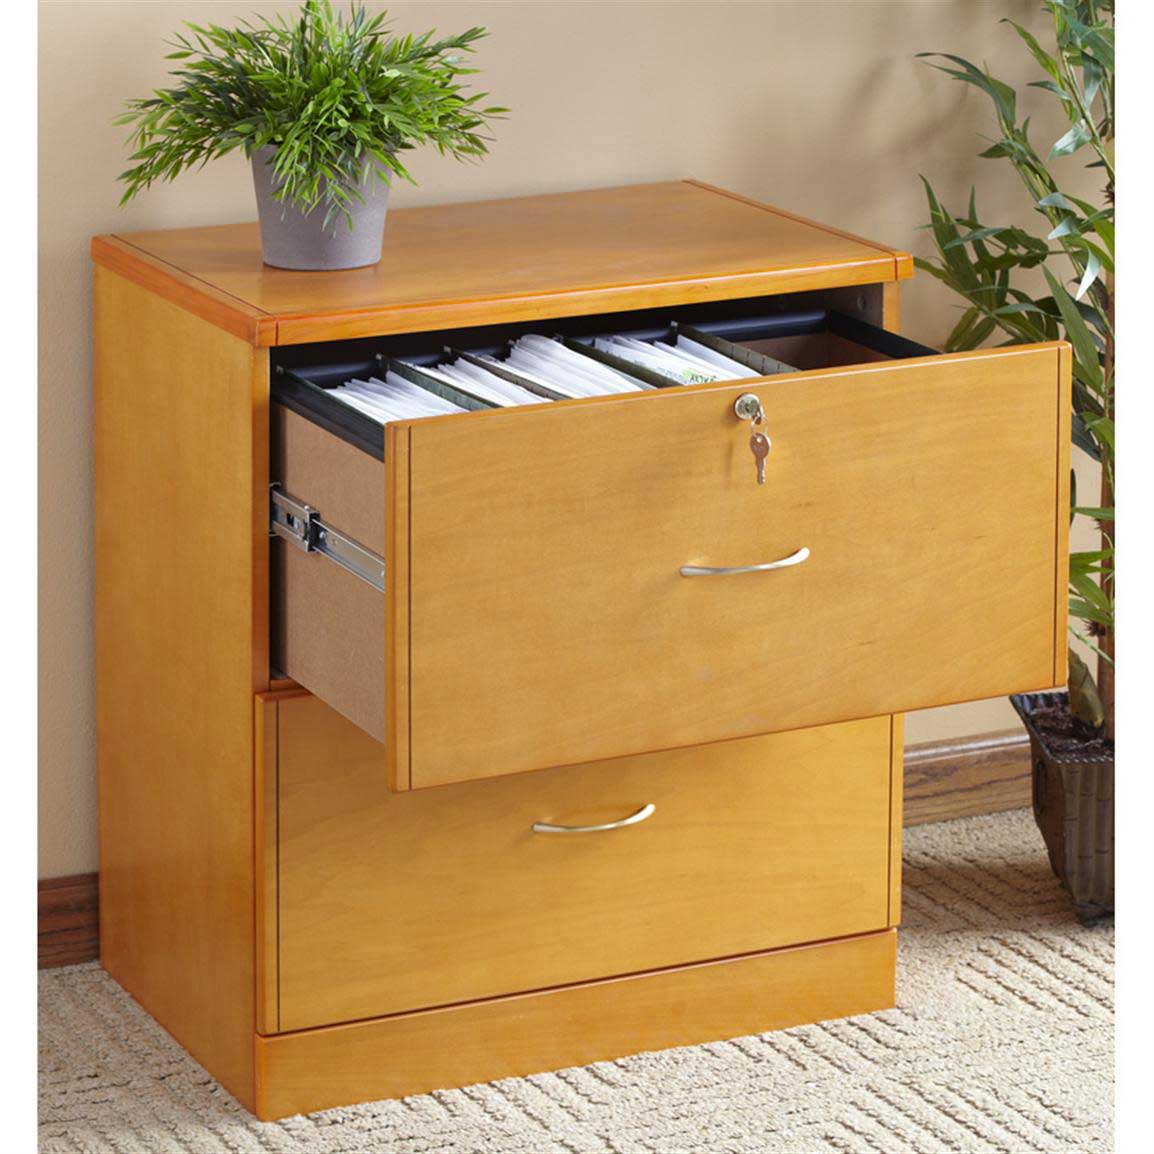 small boxy flat file ikea cabinet design with metal handle and key and potted plant on